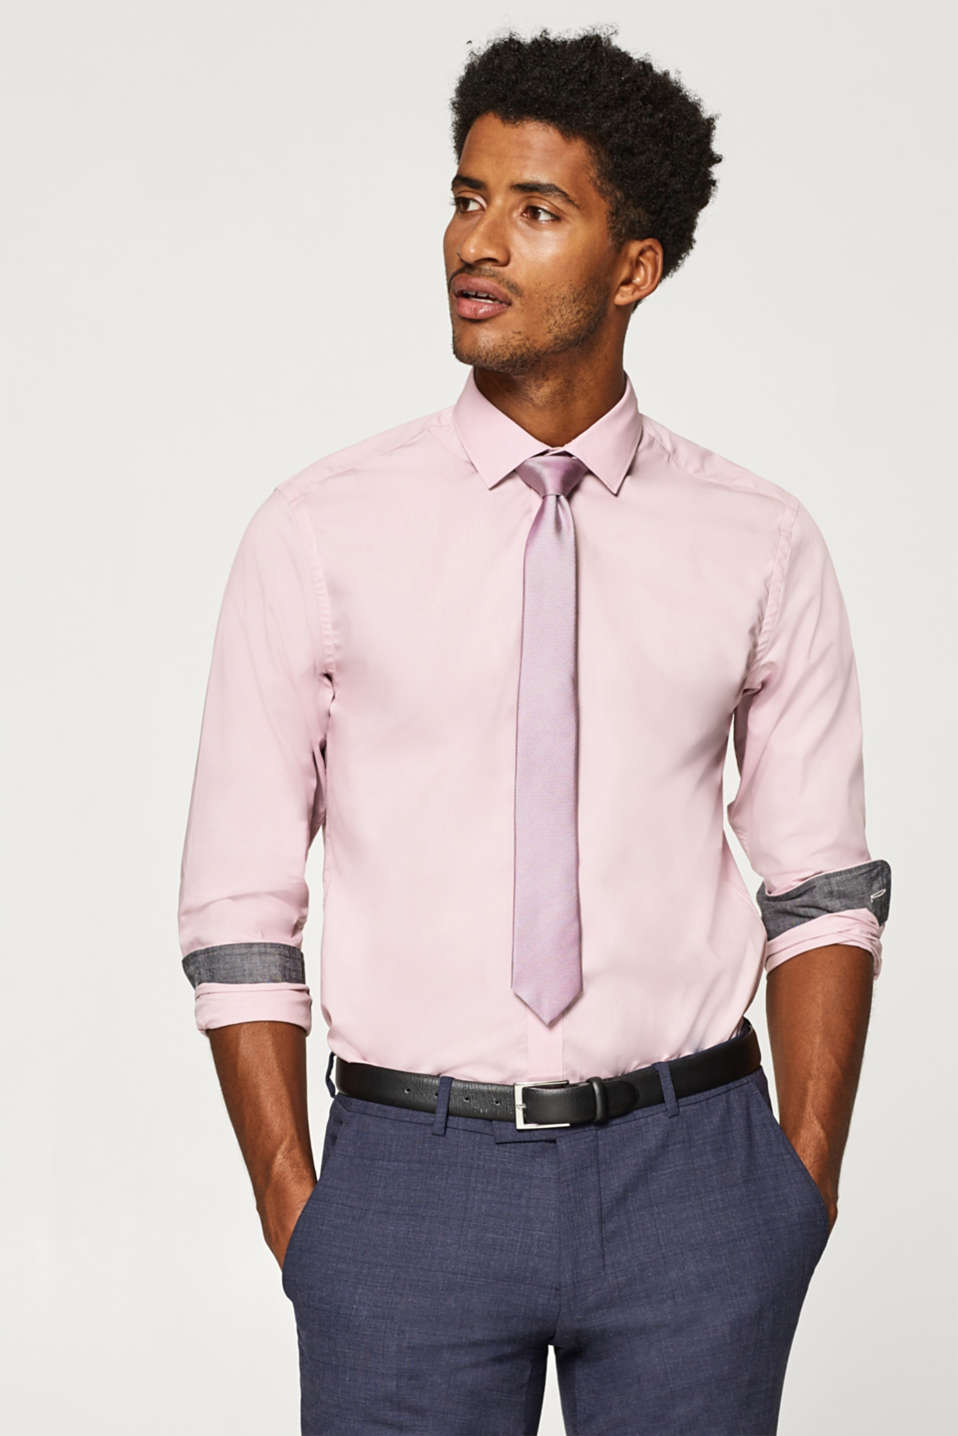 Esprit - Easy-iron shirt with a Kent collar, 100% cotton